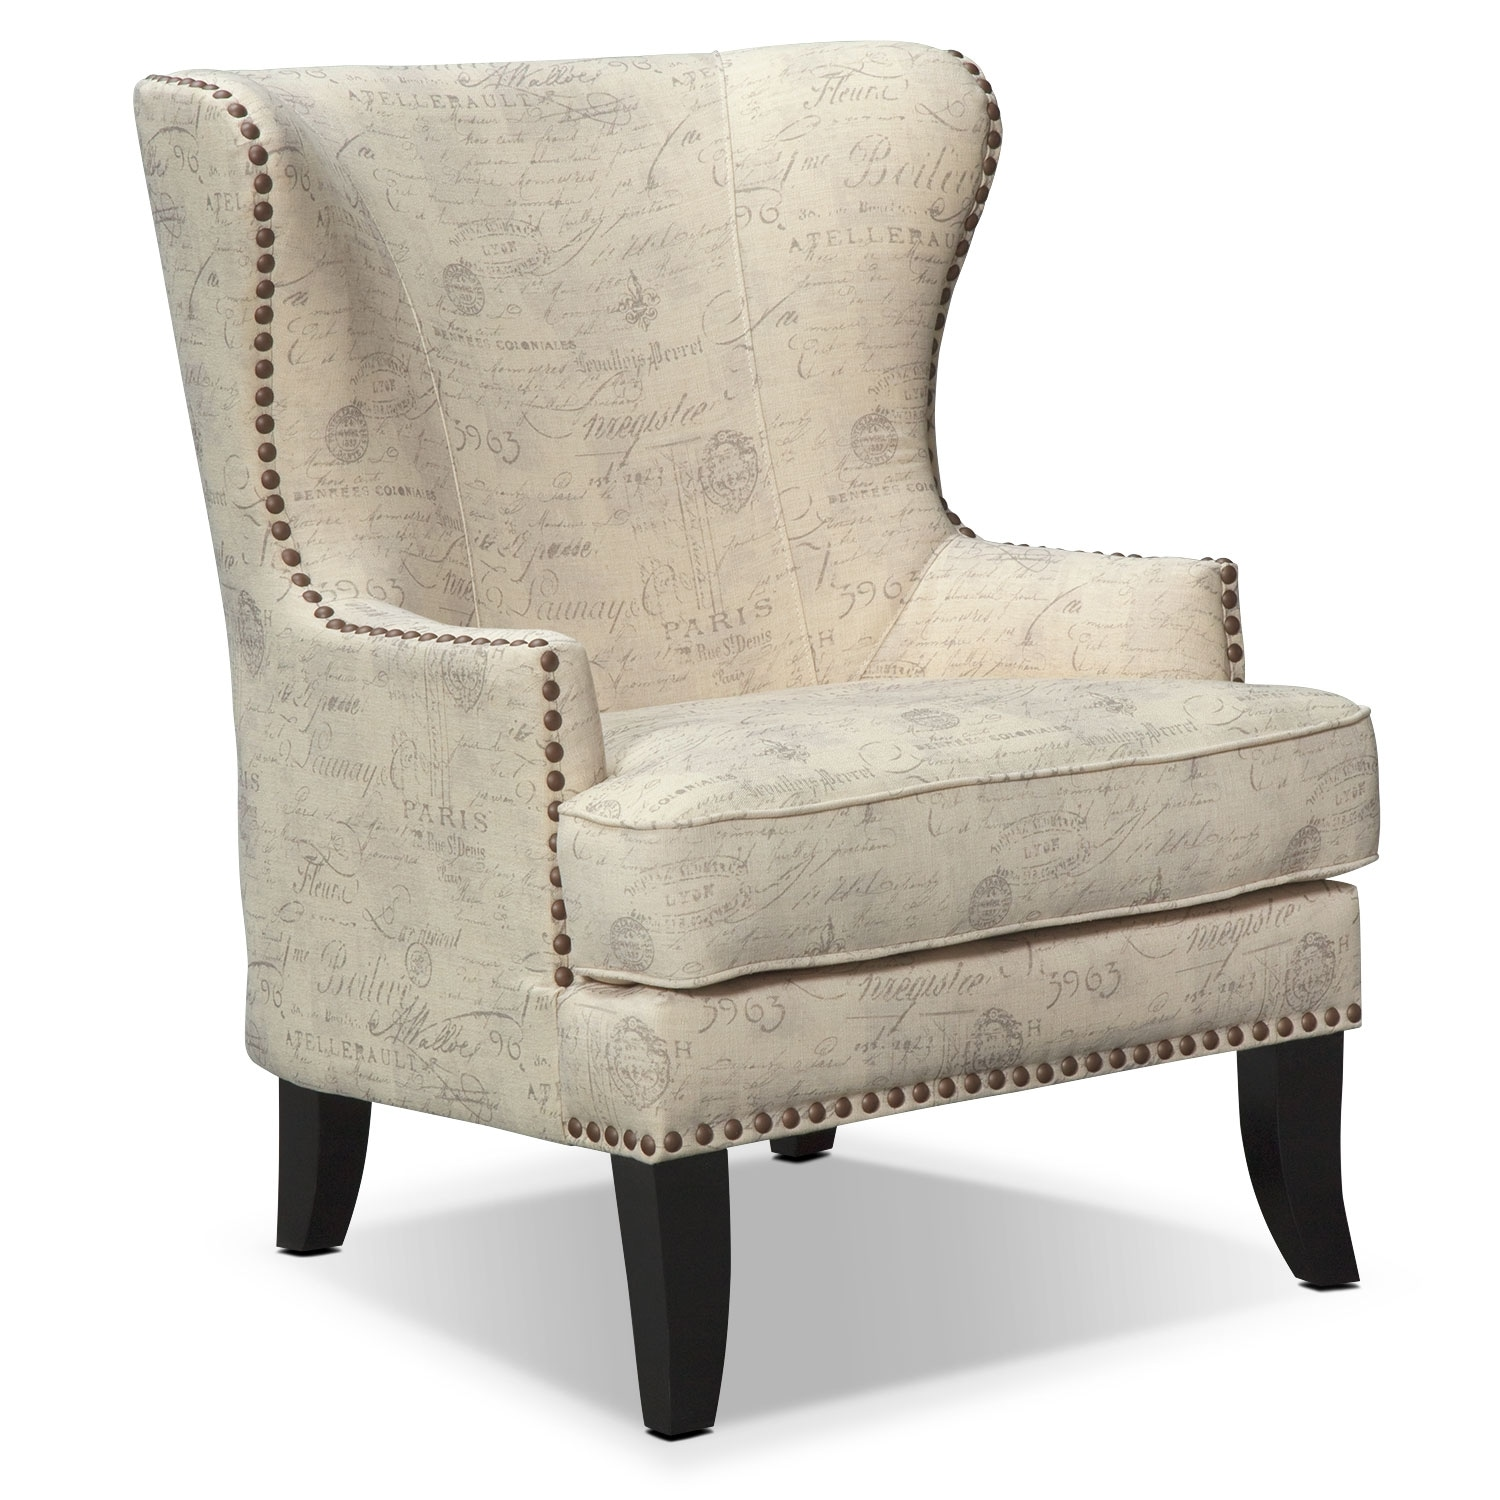 Marseille accent chair cream and black american for Seating furniture living room